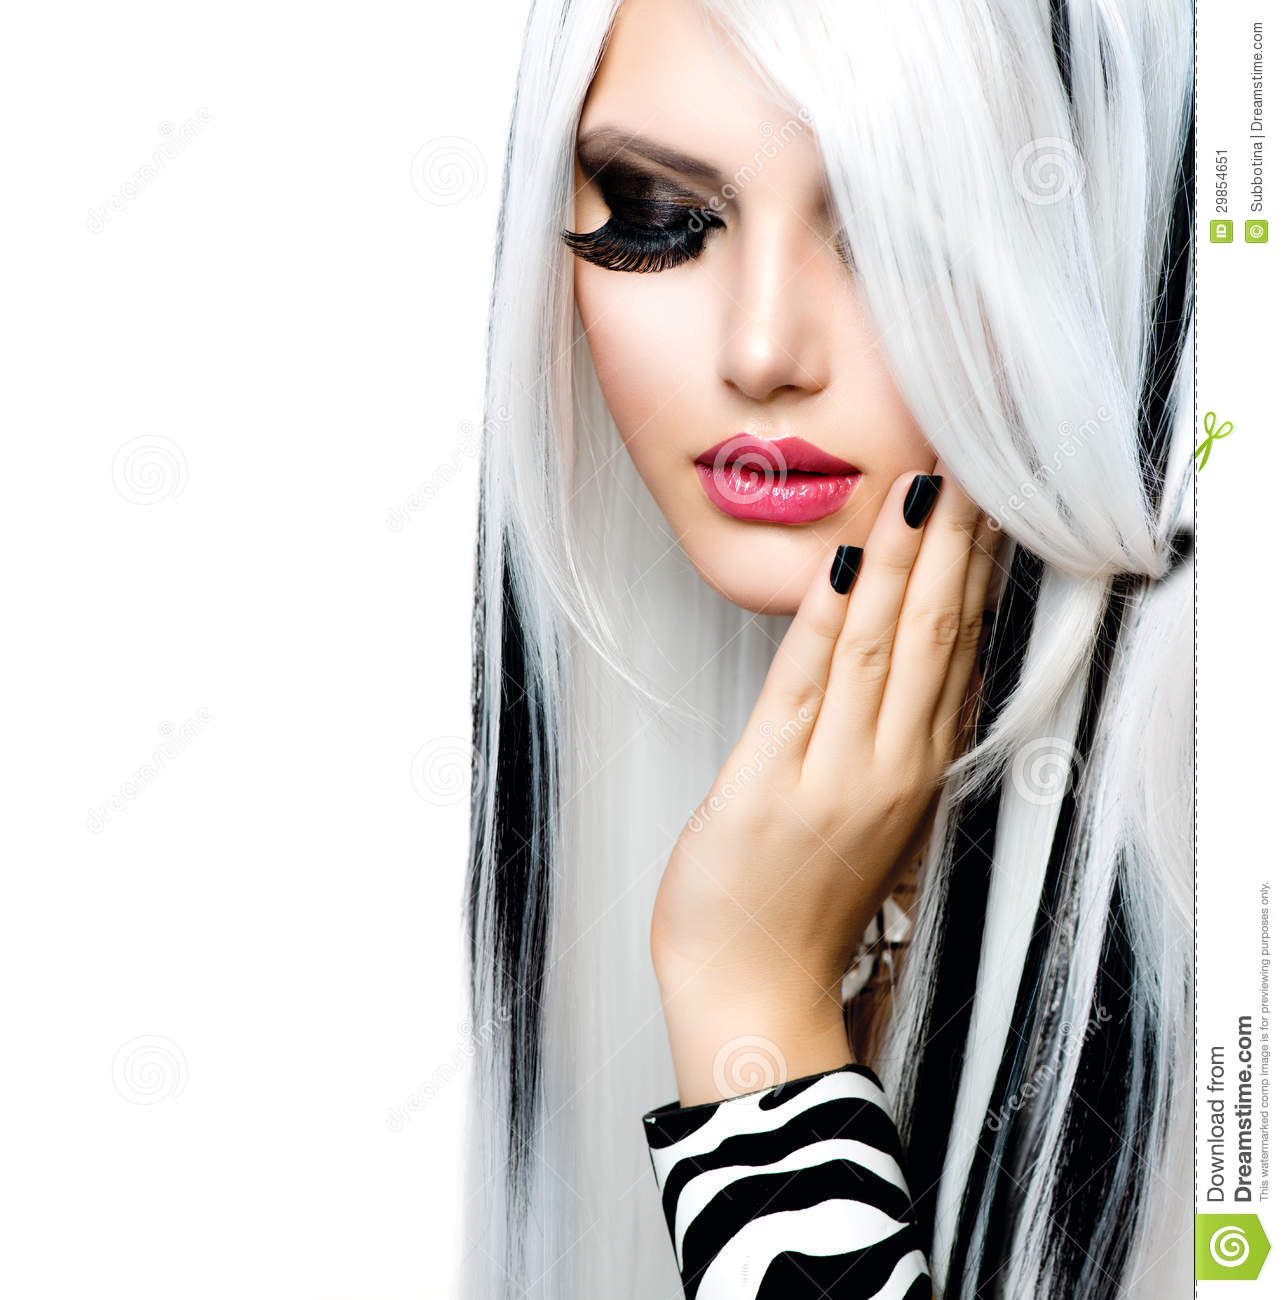 White Girl Fashion: Fashion Girl Black And White Style Stock Image